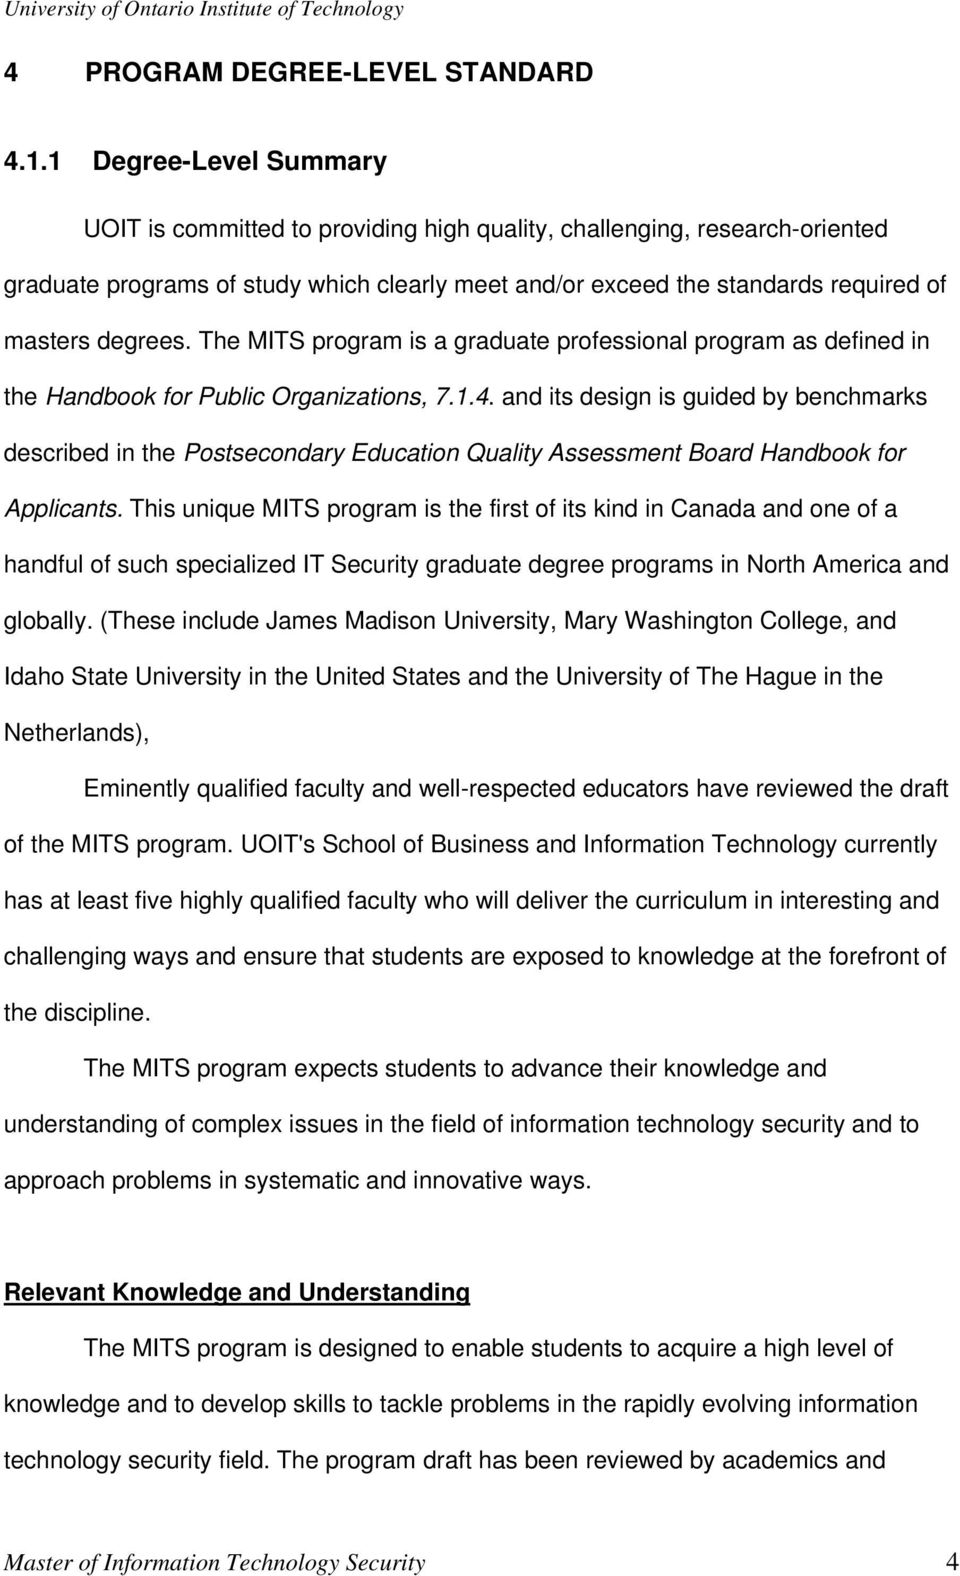 degrees. The MITS program is a graduate professional program as defined in the Handbook for Public Organizations, 7.1.4.